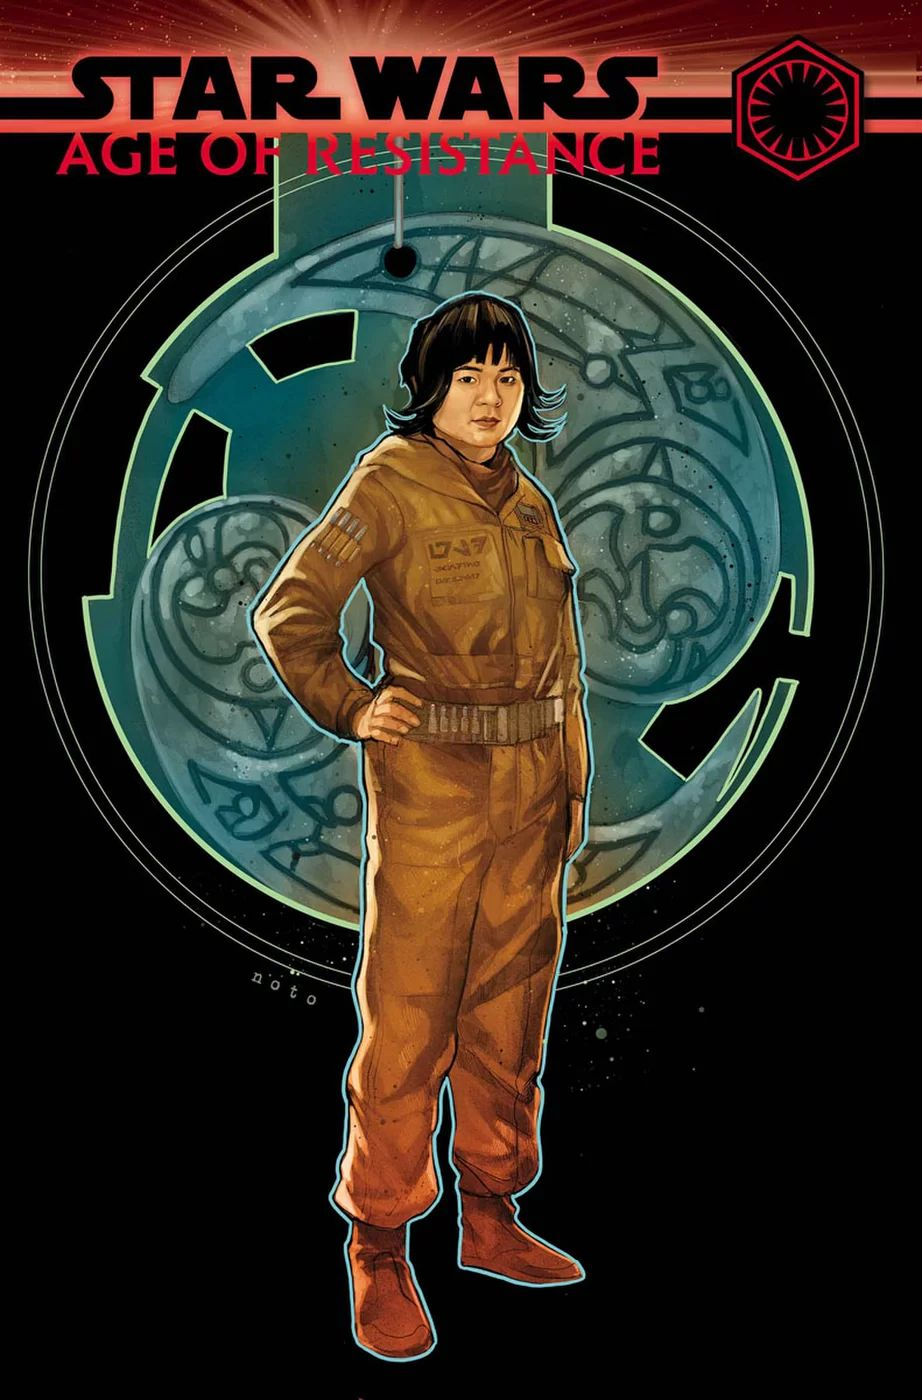 Star Wars Age of Resistance Rose Tico